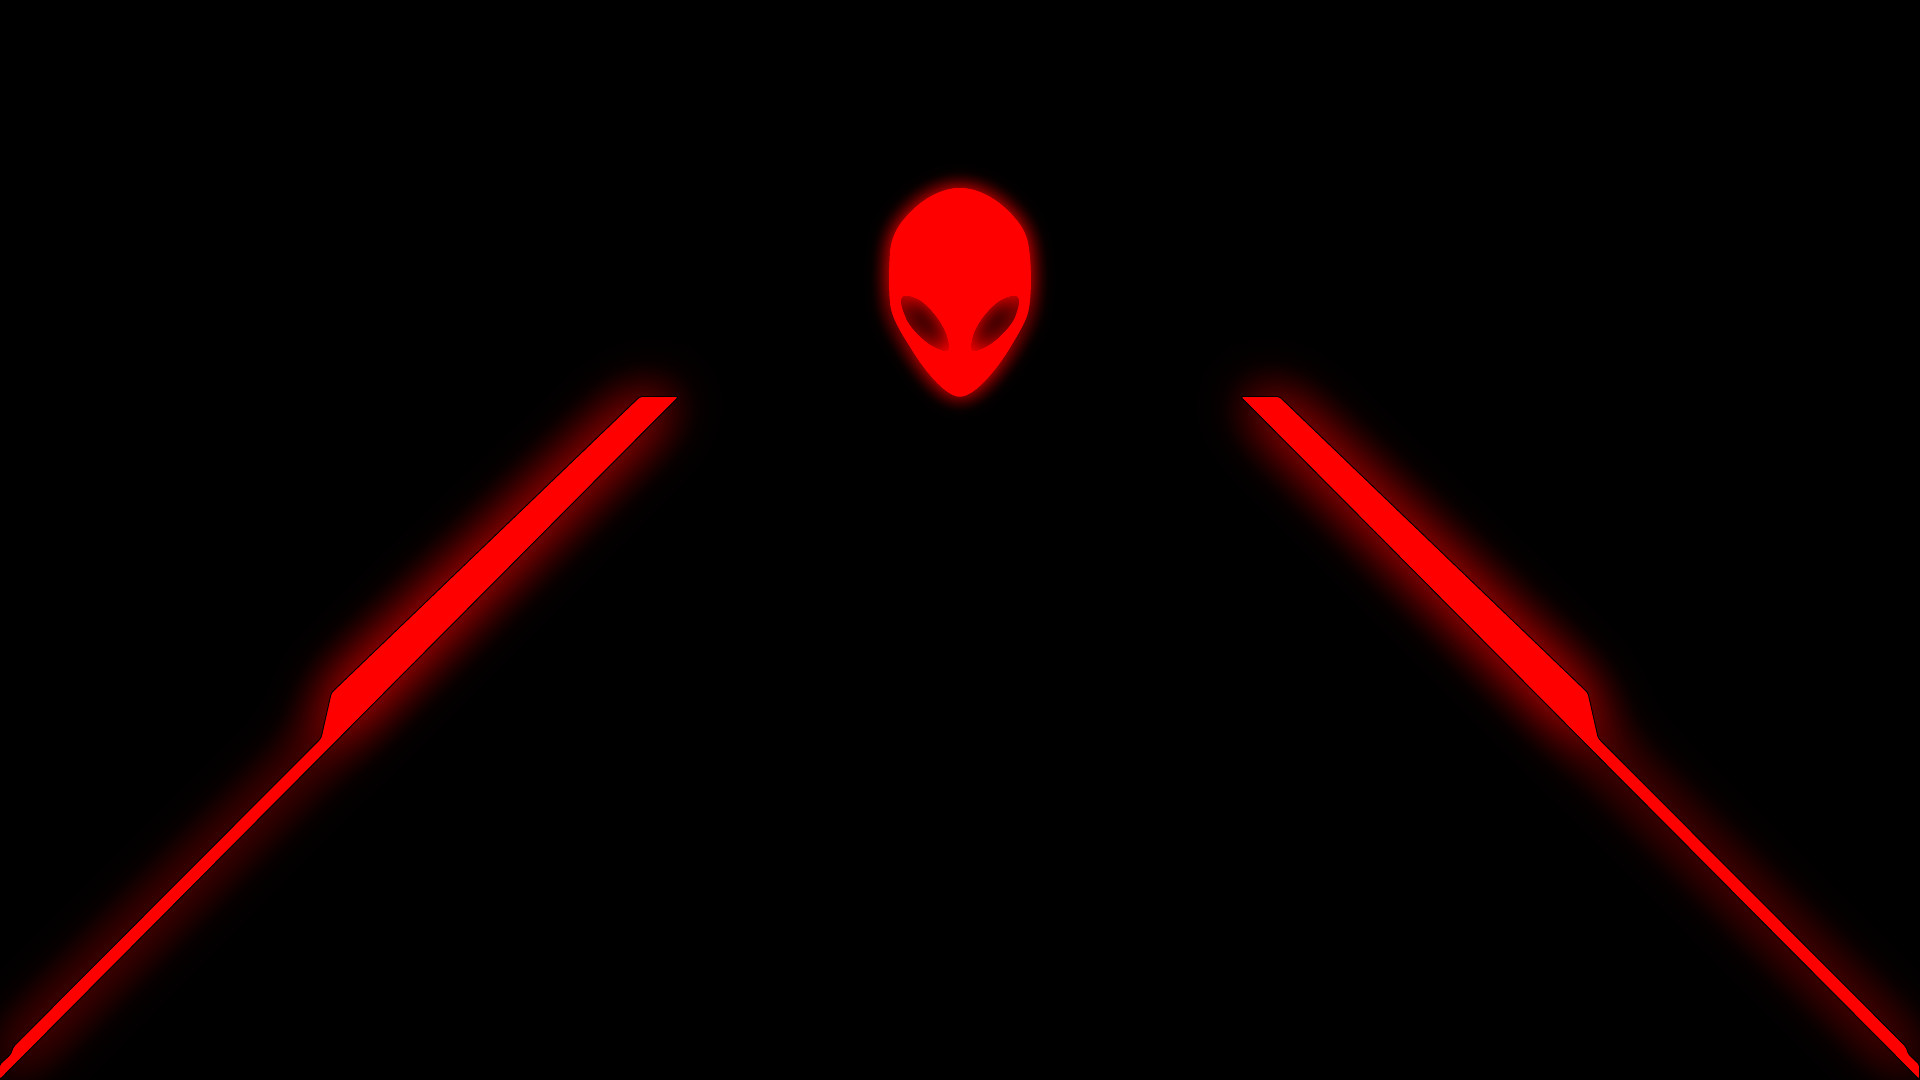 alienware wallpapers red - photo #15